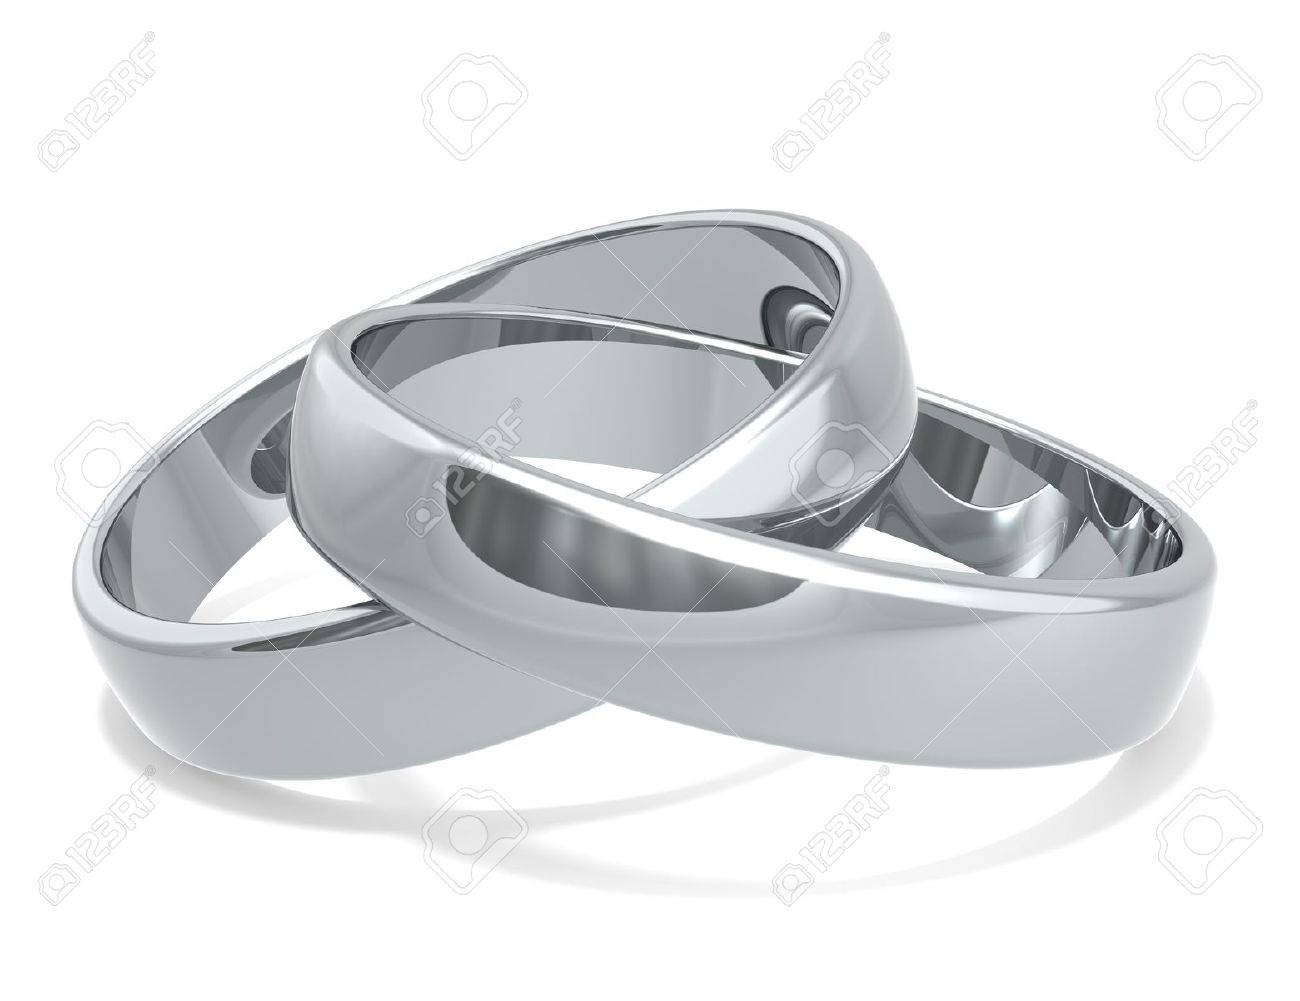 New Silver Wedding Anniversary Rings Photo Gallery – Alsayegh With Regard To Best And Newest Silver Anniversary Rings (View 16 of 25)